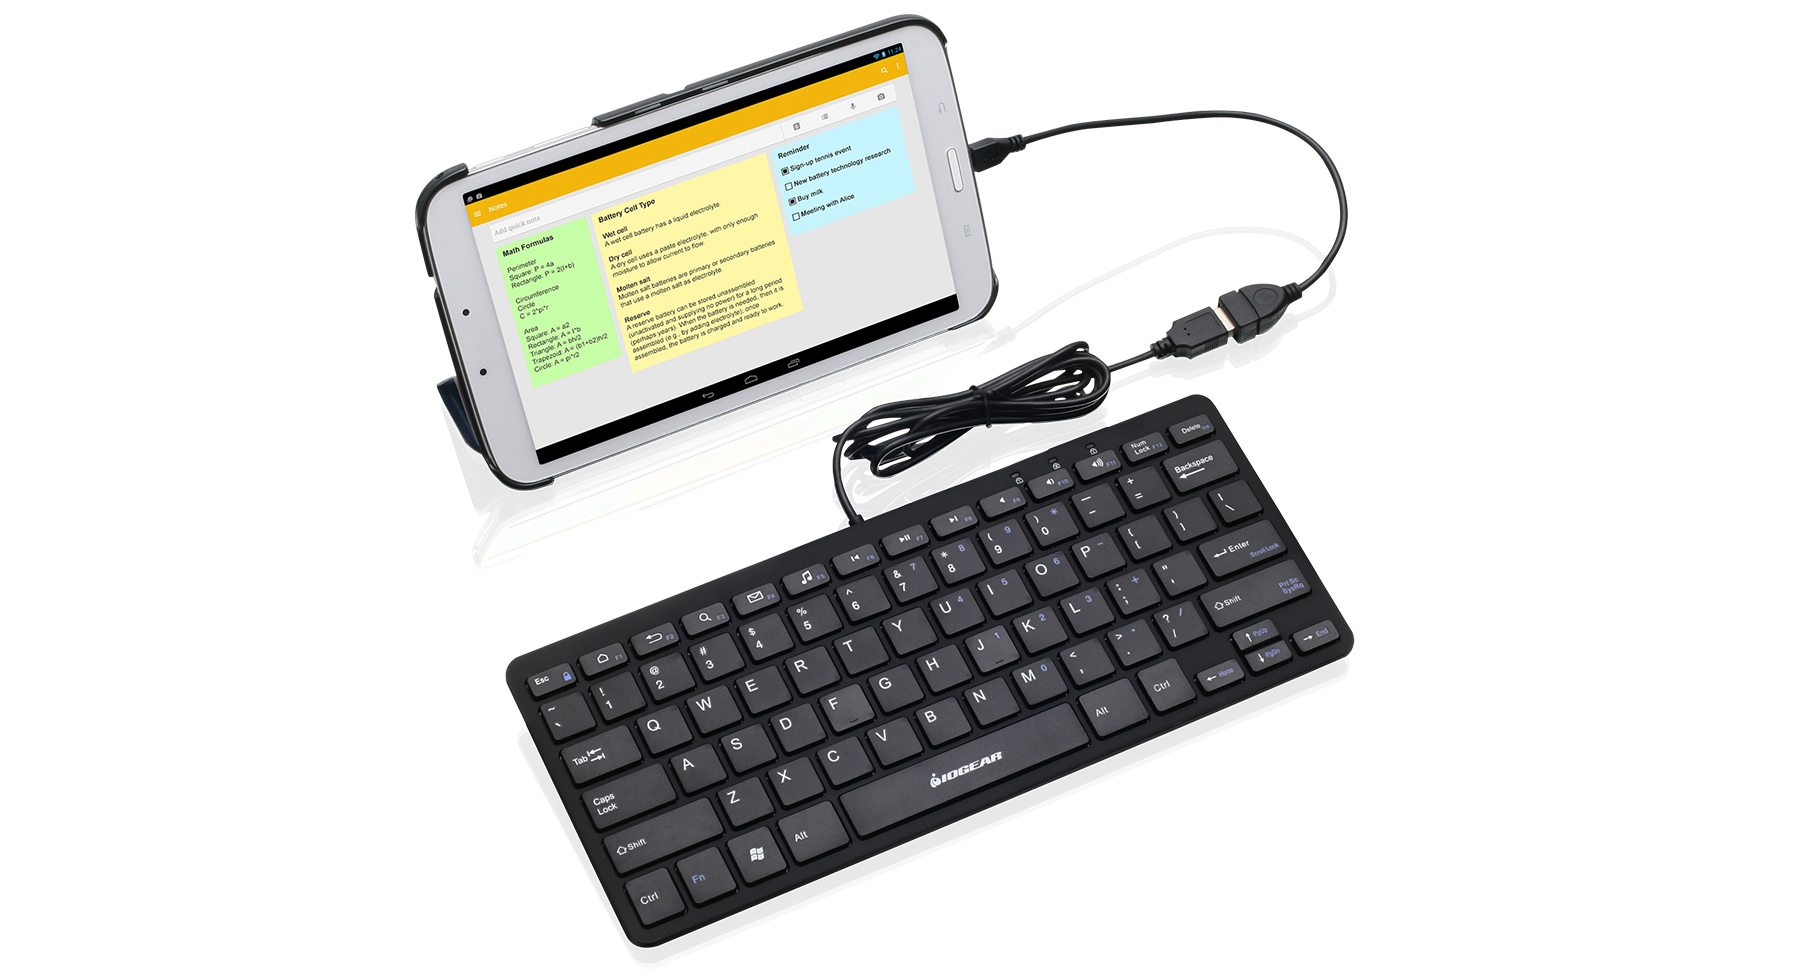 iogear gkb633u portable keyboard for tablets w otg adapter. Black Bedroom Furniture Sets. Home Design Ideas